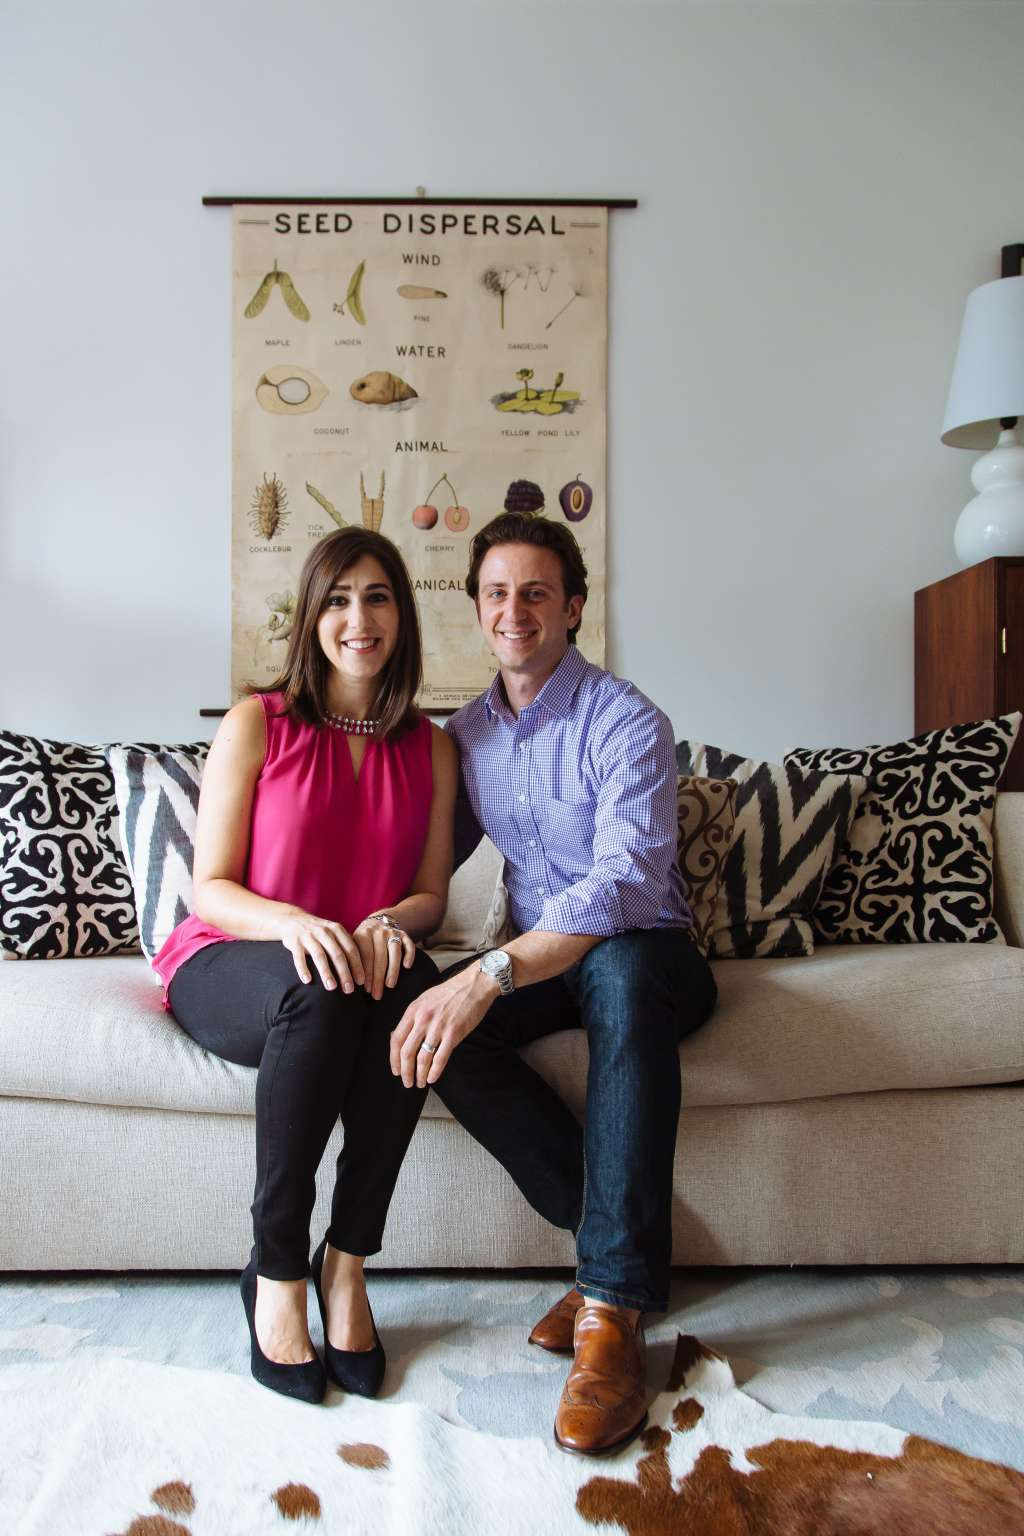 House Tour: A Scenic & Textured Brooklyn Home